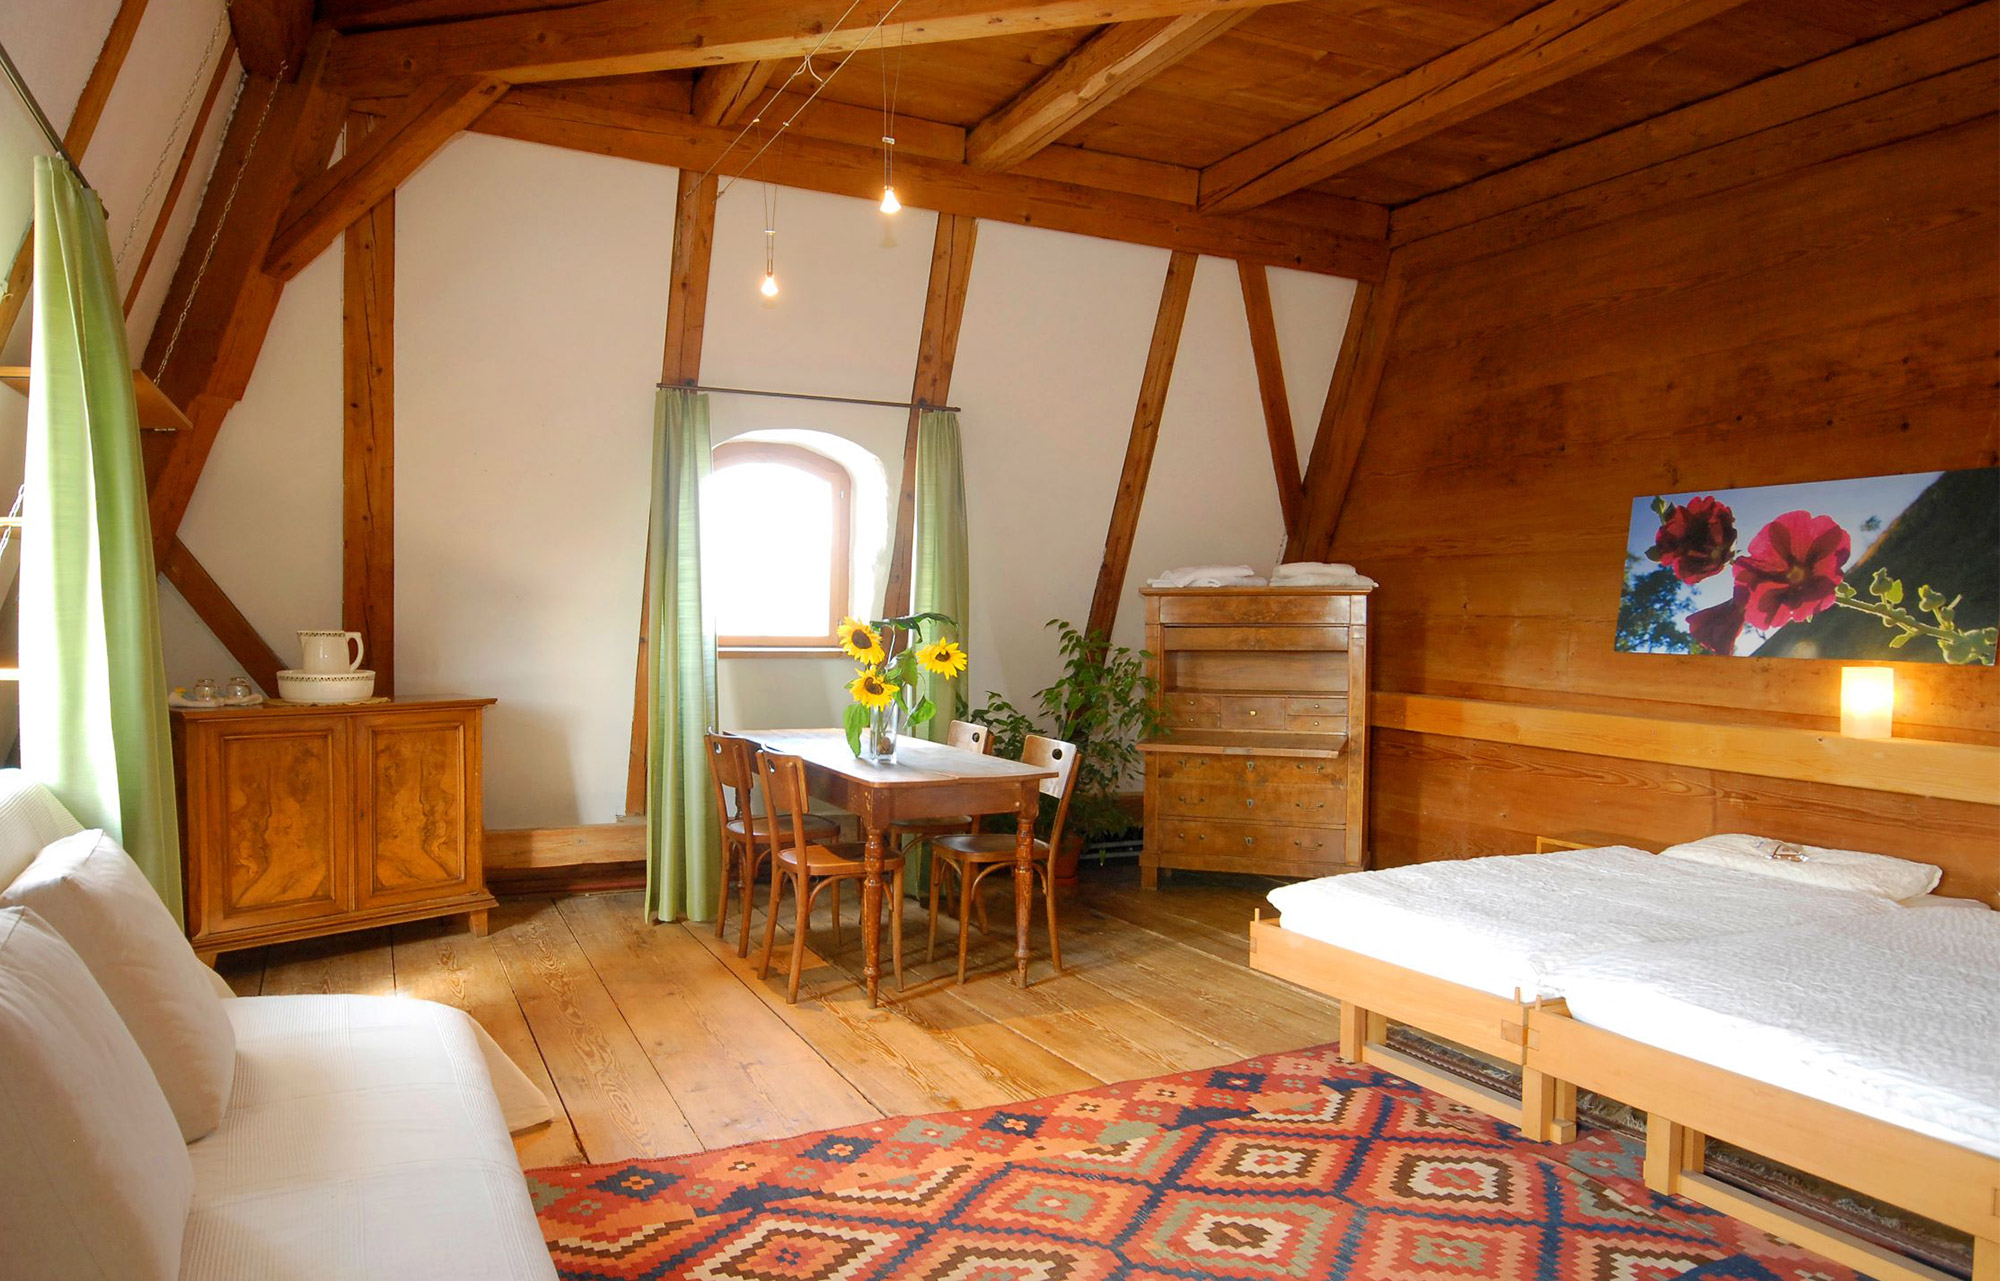 Experience cosiness in the rooms of the Rössli Mogelsberg